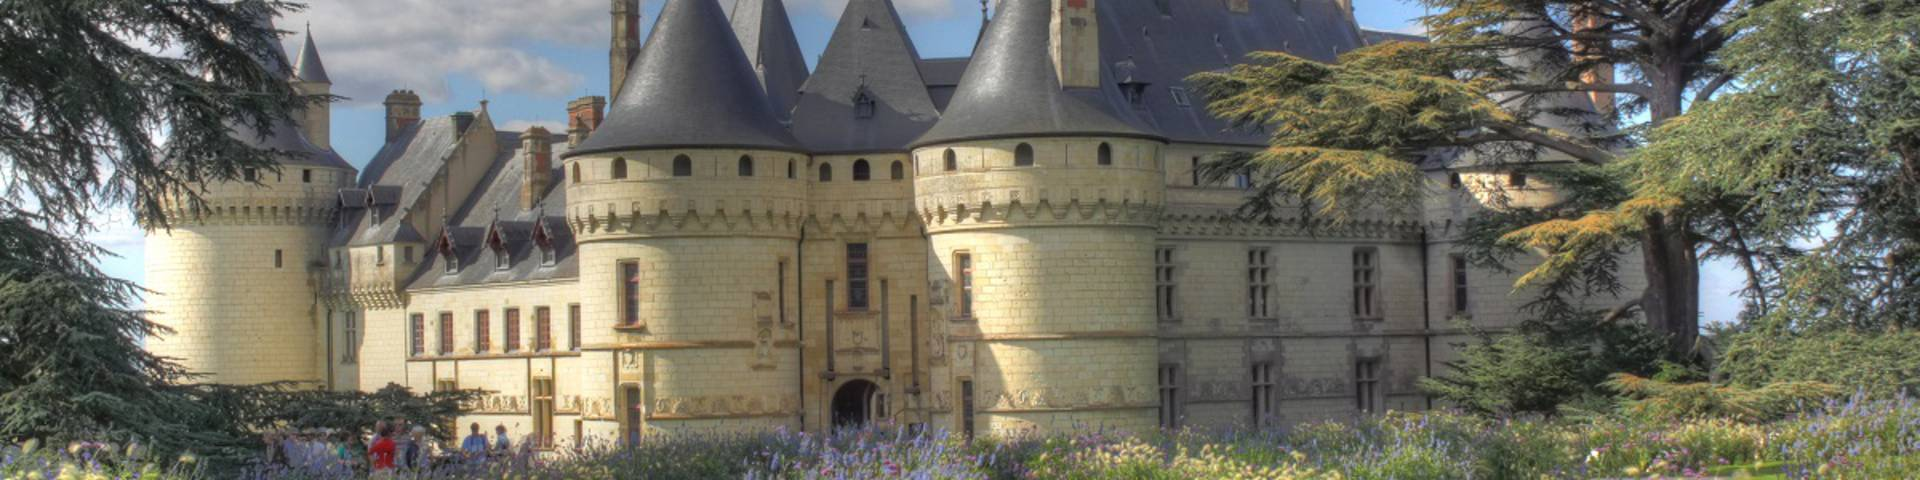 The domain of Chaumont-sur-Loire.